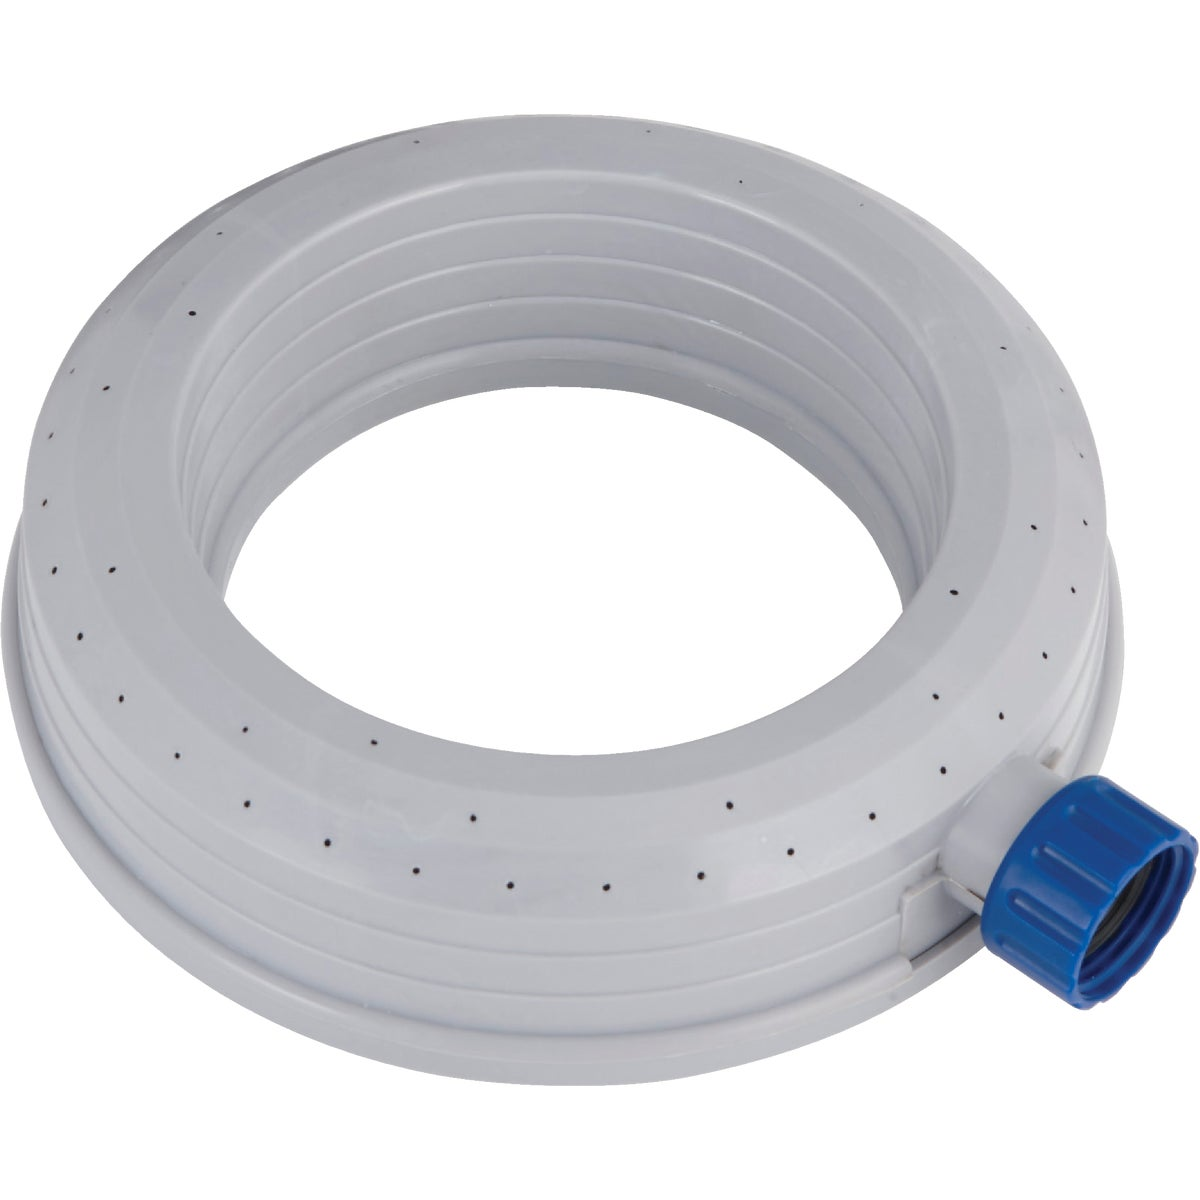 POLY RING SPRINKLER - DIT306UPC by Bosch G W